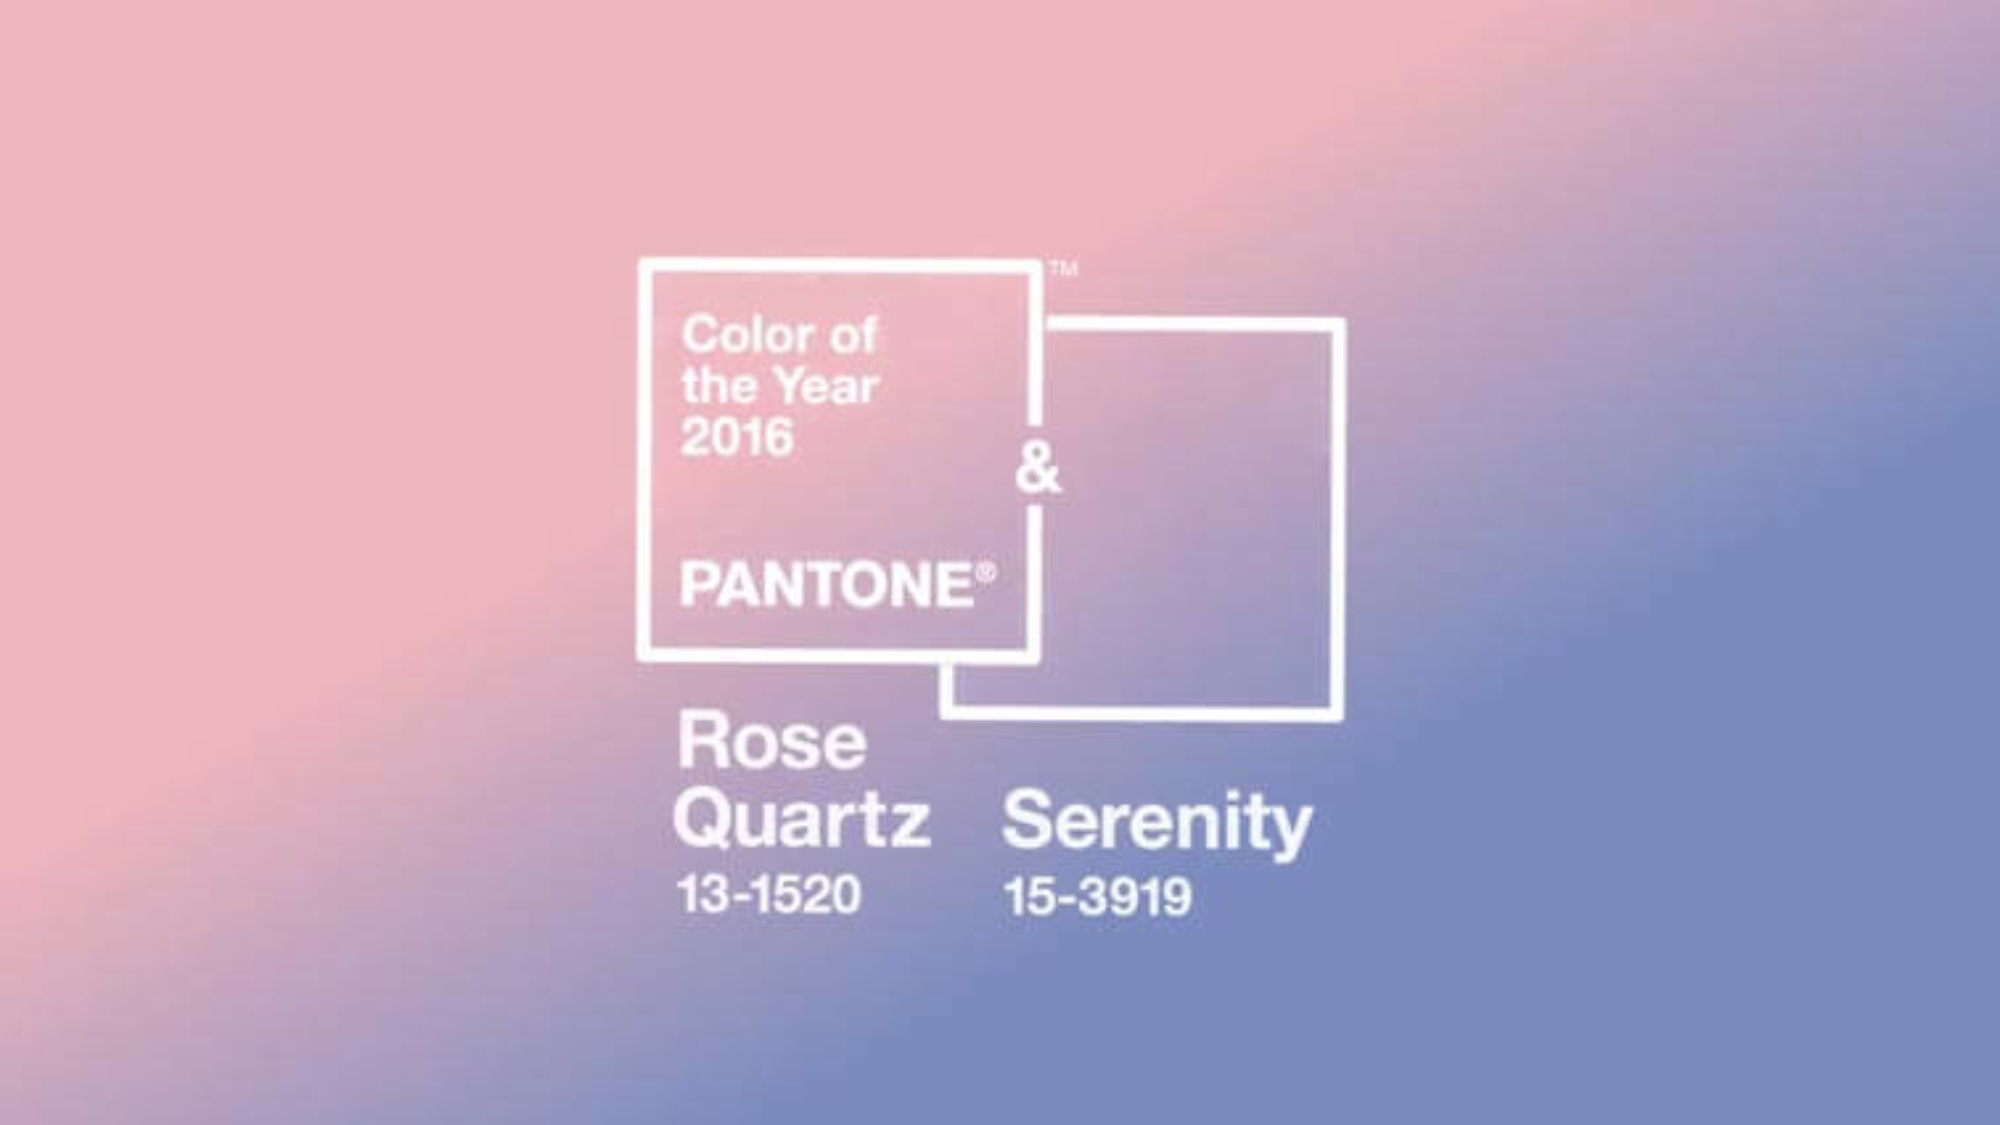 Pantone Color 2016 Rose Quartz Serenity Pantone Color Of The Year 2016